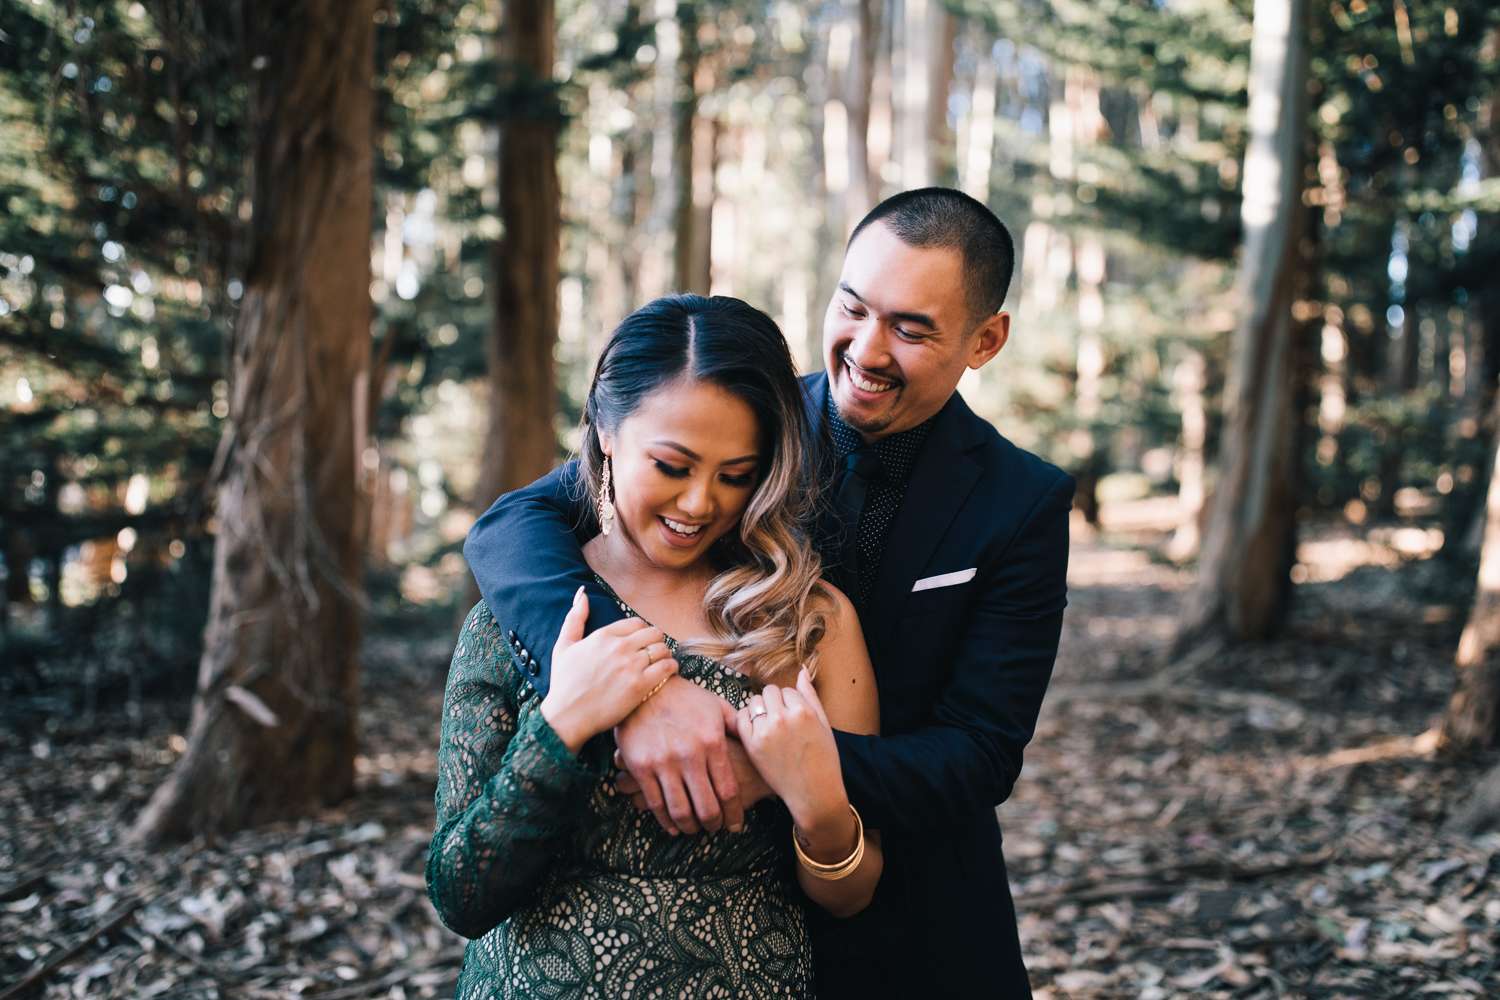 2018_11_ 042018.11.4 Leah + Ed Engagement Session Blog photos Edited For Web 0037.jpg